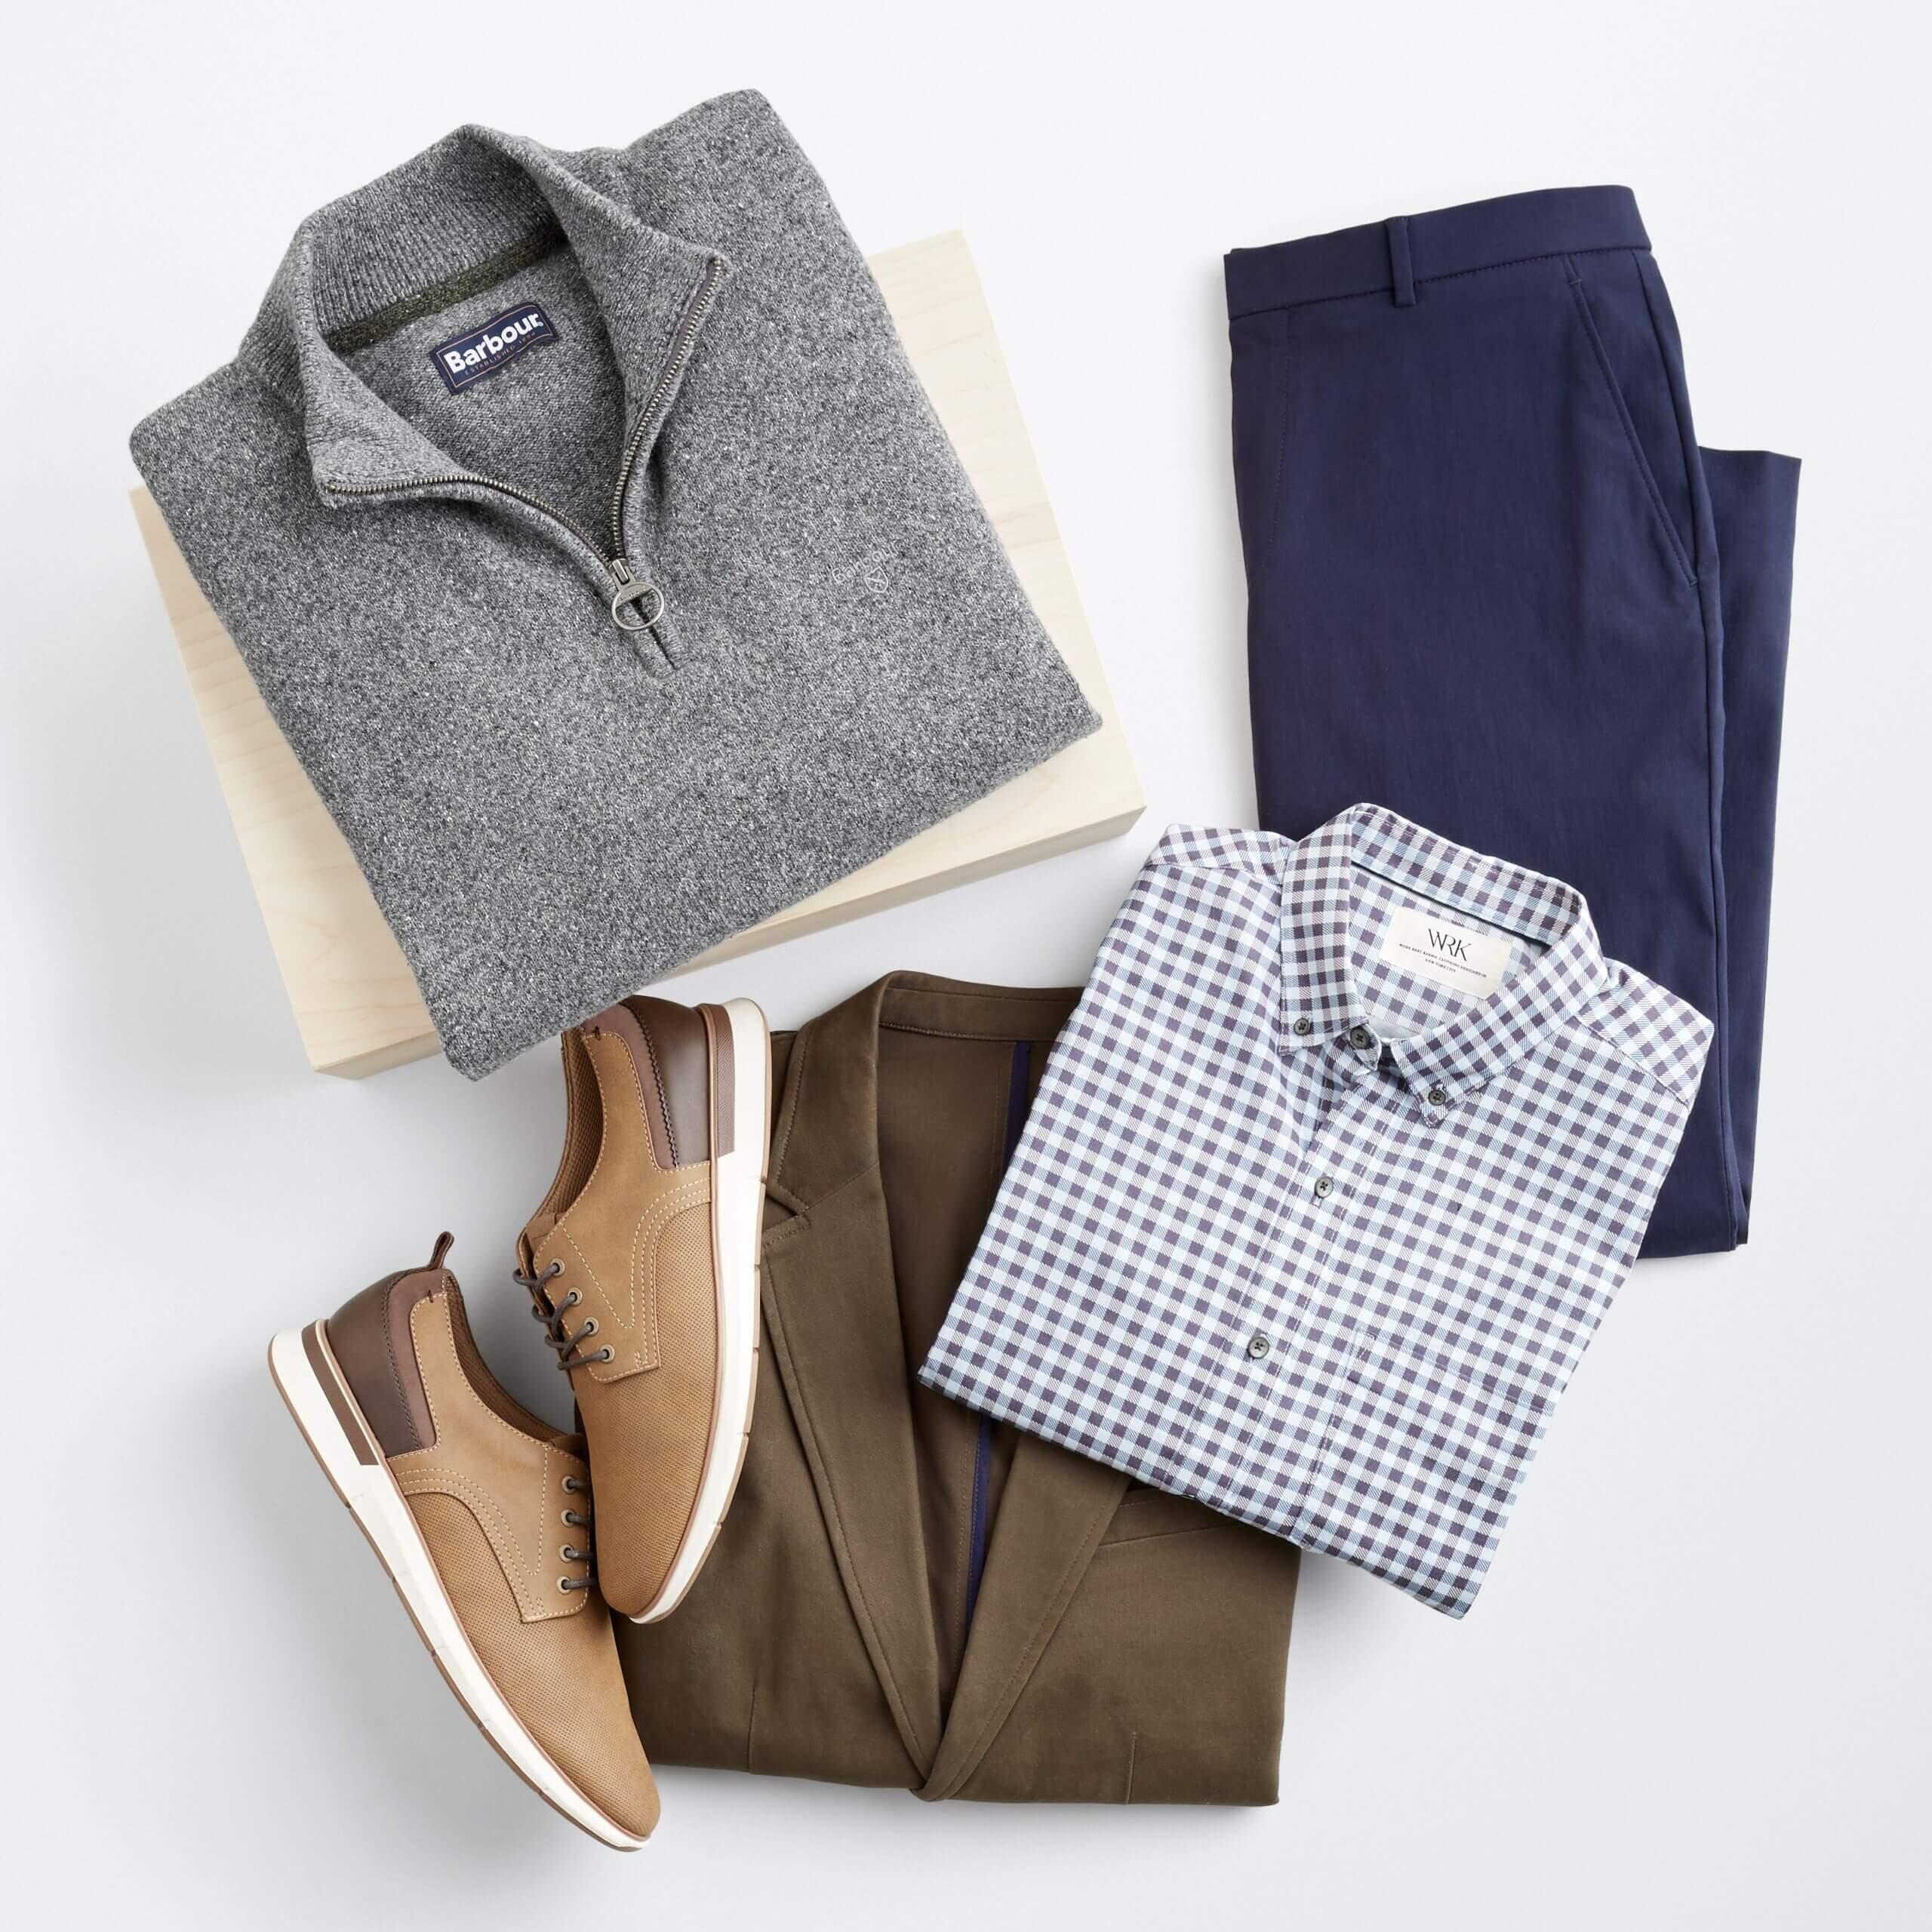 Stitch Fix men's winter outfit with grey quarter zip, navy trousers, blue and white button-down shirt, brown blazer and light brown shoes.